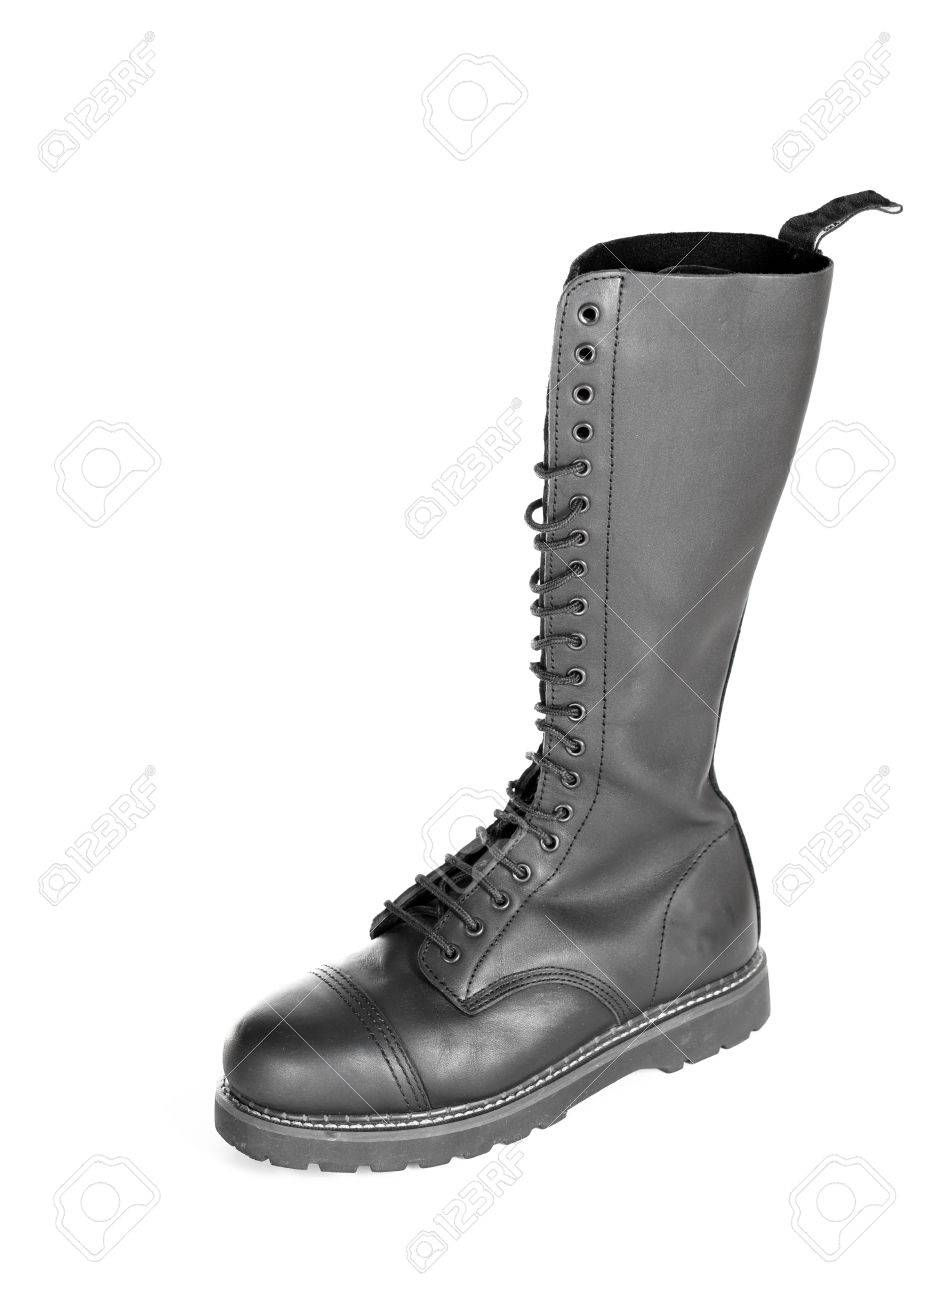 2f7a66d2ccf New tall lace-up knee-high black leather boot featuring 20 eyelets..